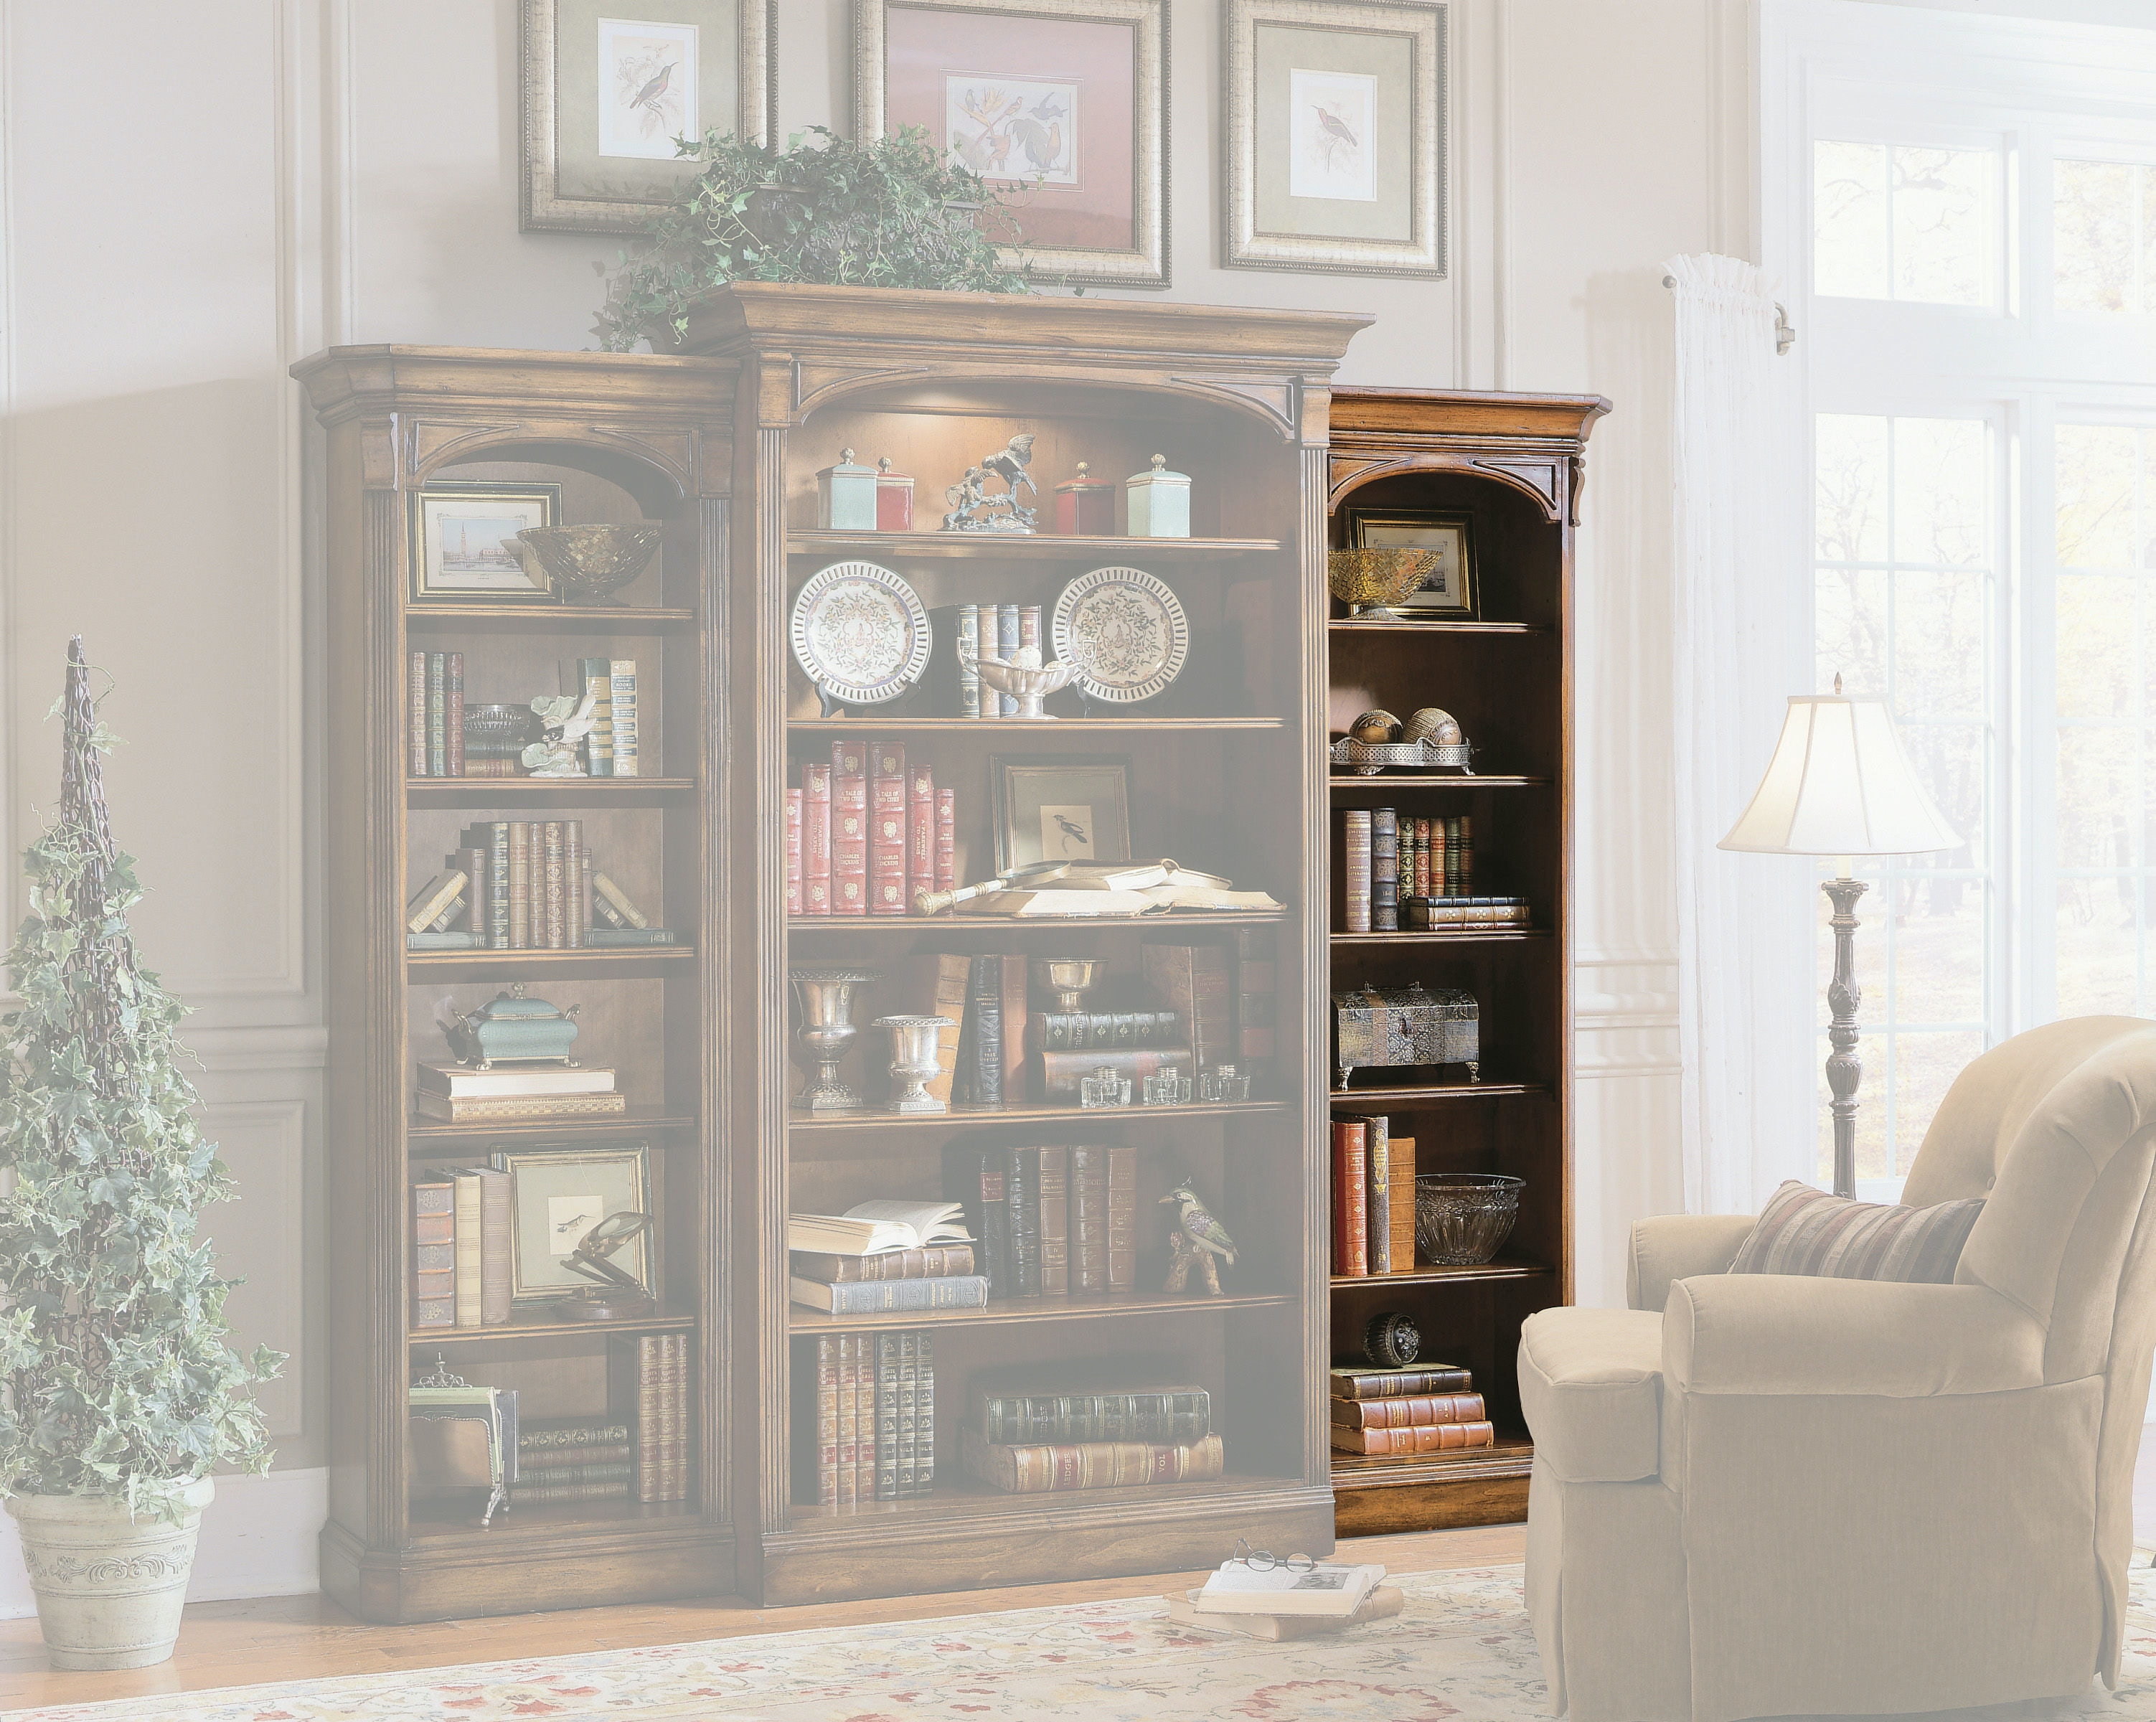 Hooker Furniture Home Office Right Bookcase 281 10 542 At American Factory  Direct